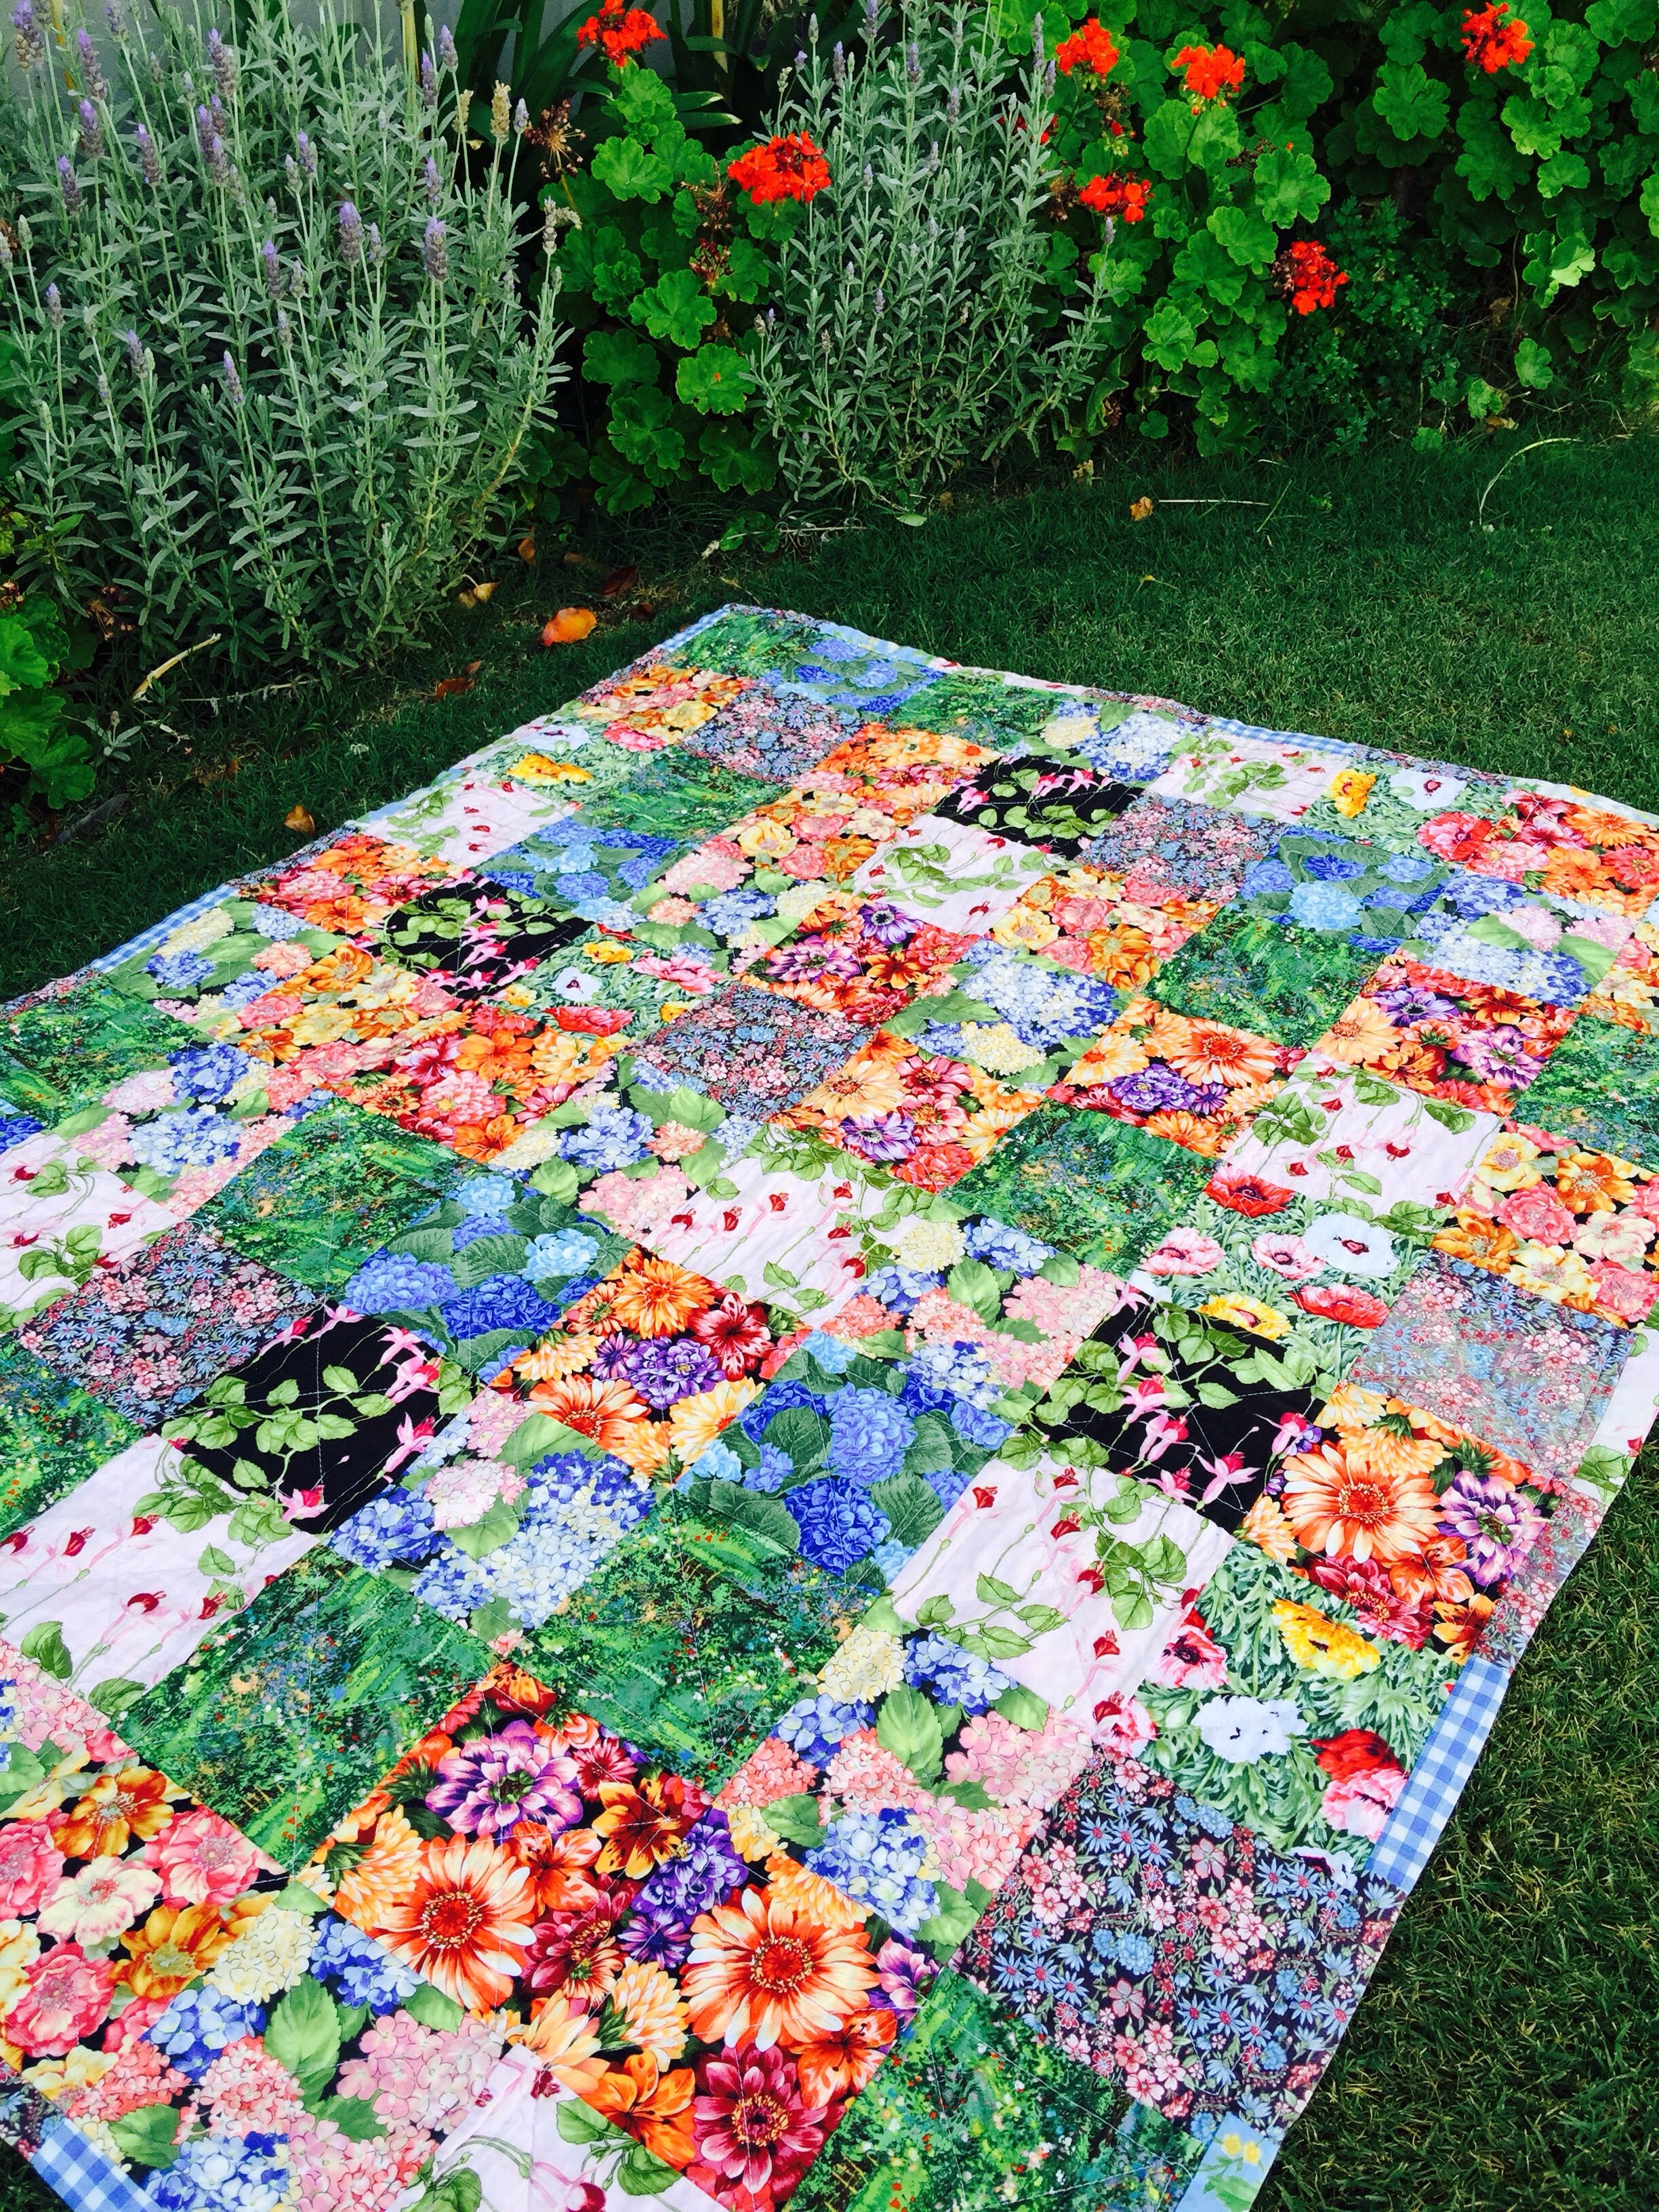 Susies garden lap quilt free pattern quilting 15 pinterest susies garden lap quilt free pattern fandeluxe Gallery